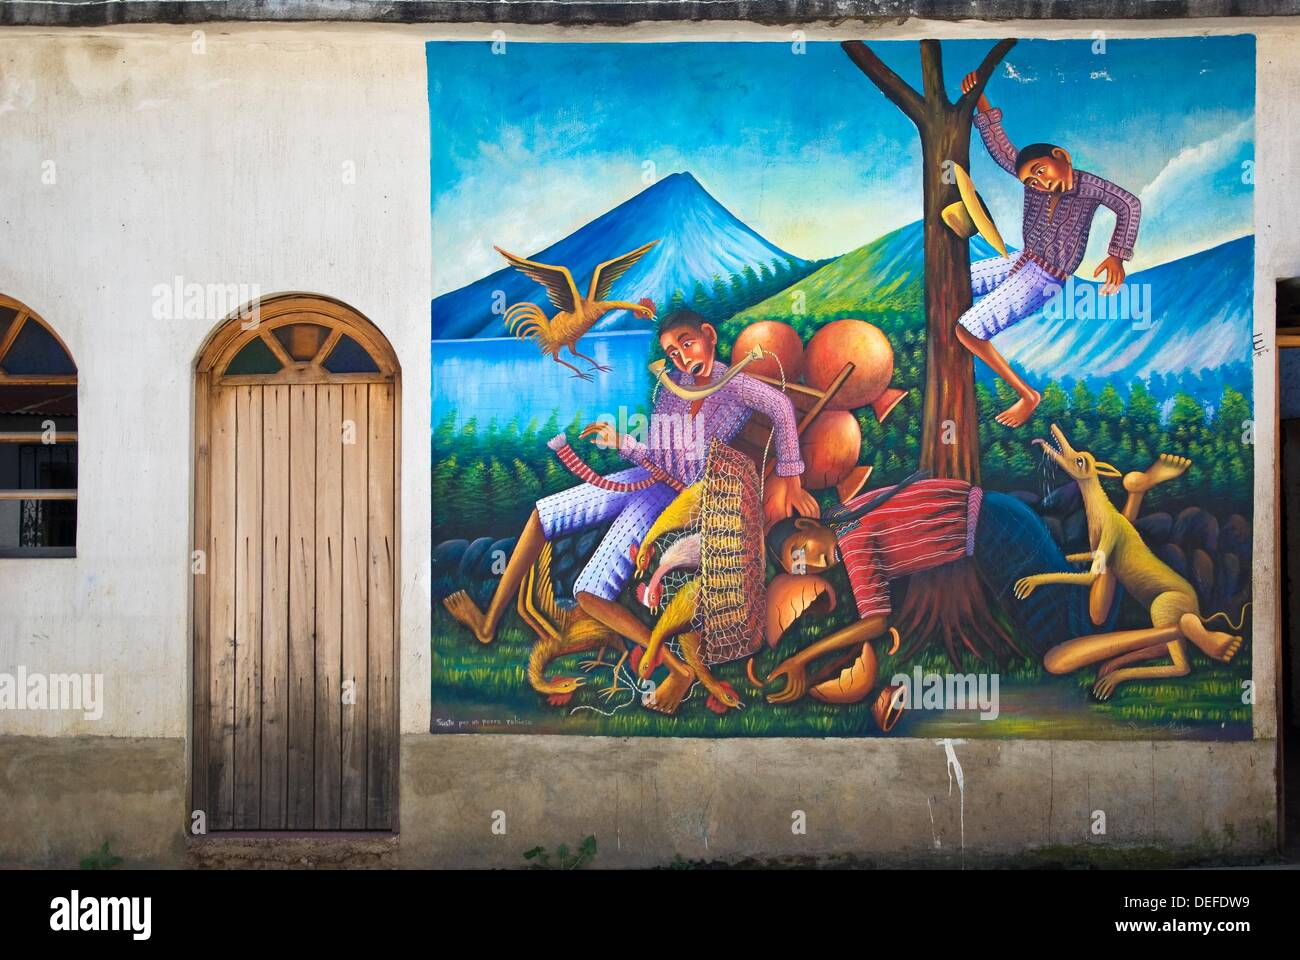 Mural Painting On The Outside Wall Of A House In San Juan La Laguna,  Sololá, Guatemala Great Pictures